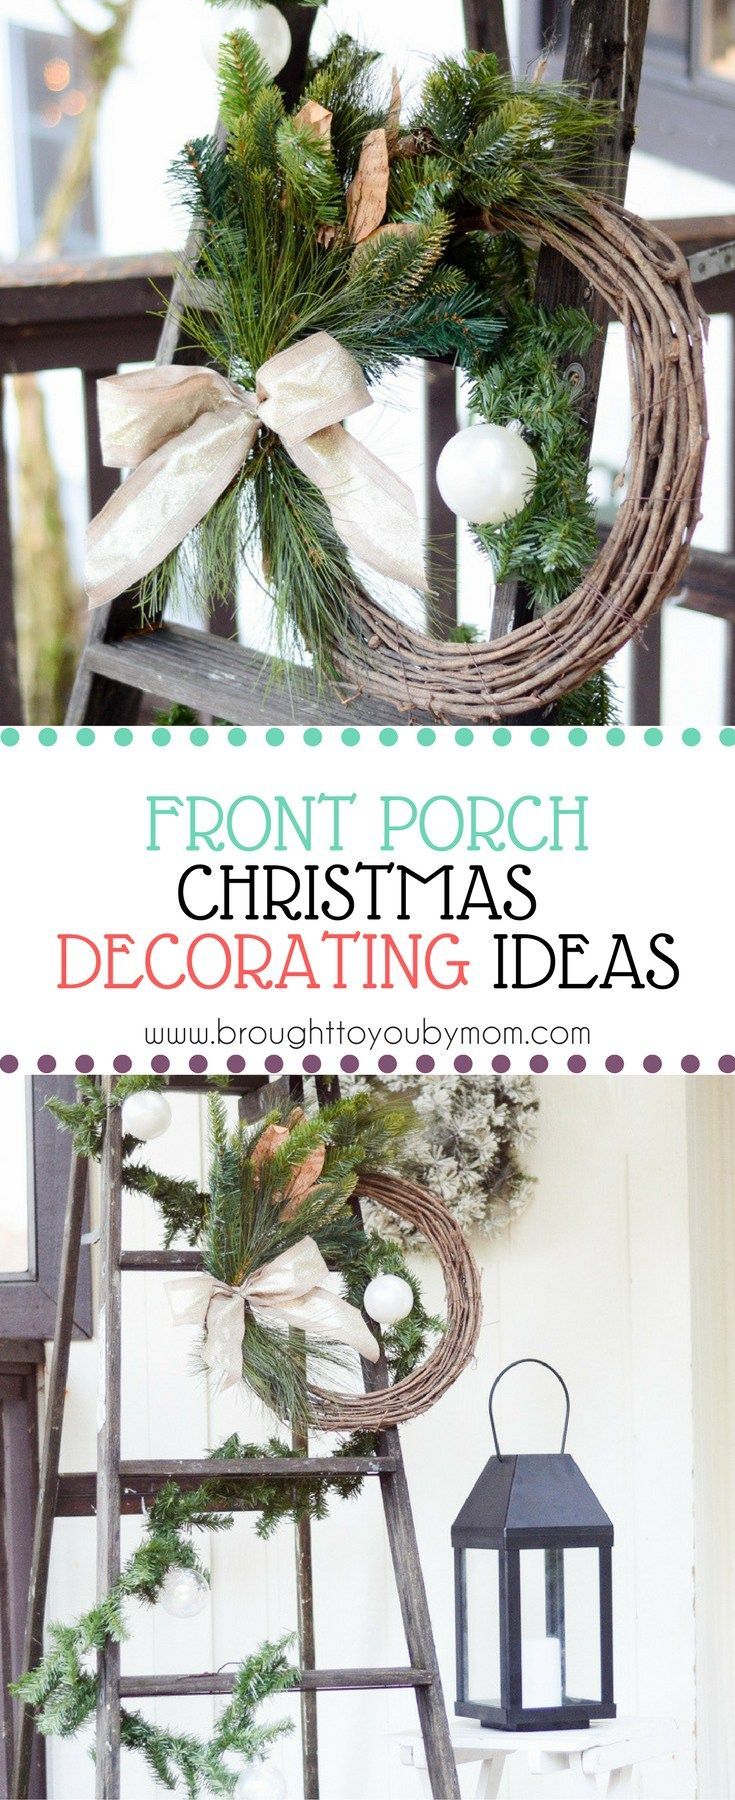 These Front Porch Christmas Decorating Ideas Will Inspire You To Decorate Yo Front Porch Christmas Decor Pretty Christmas Decorations Fun Christmas Decorations